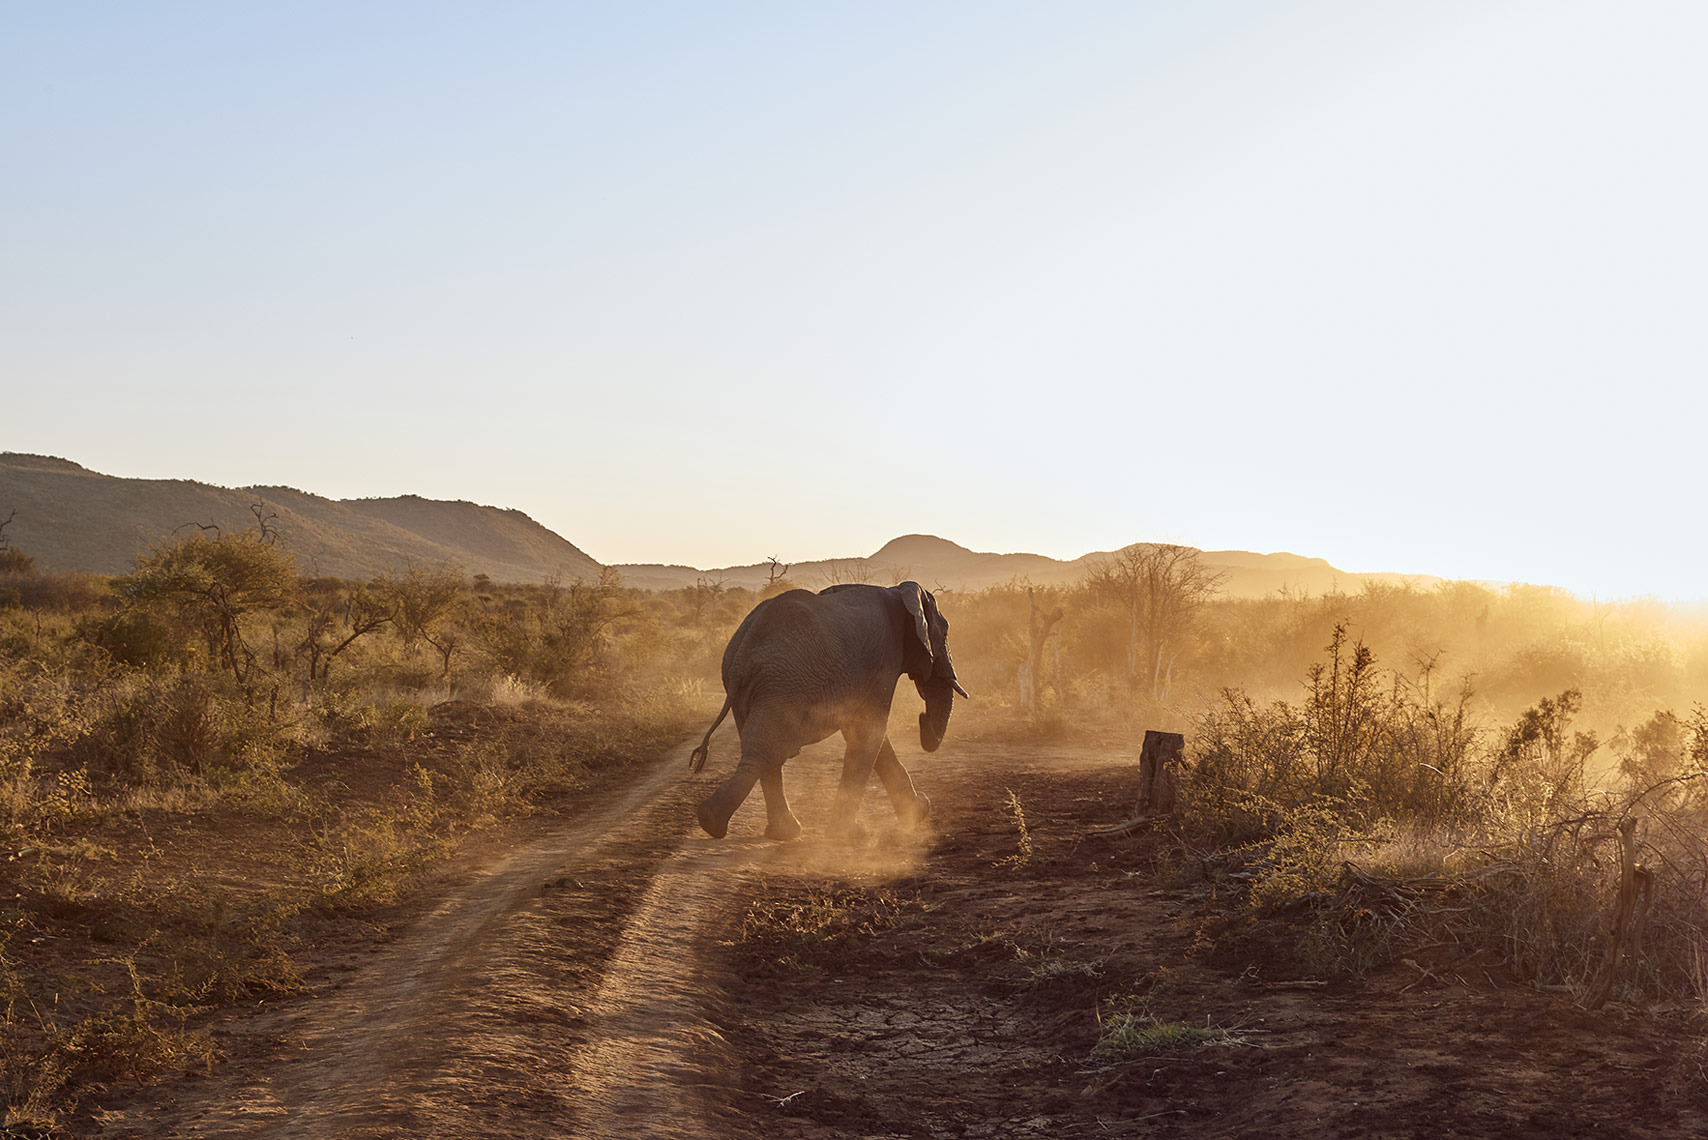 Wild-elephant-walking-away-at-sunset